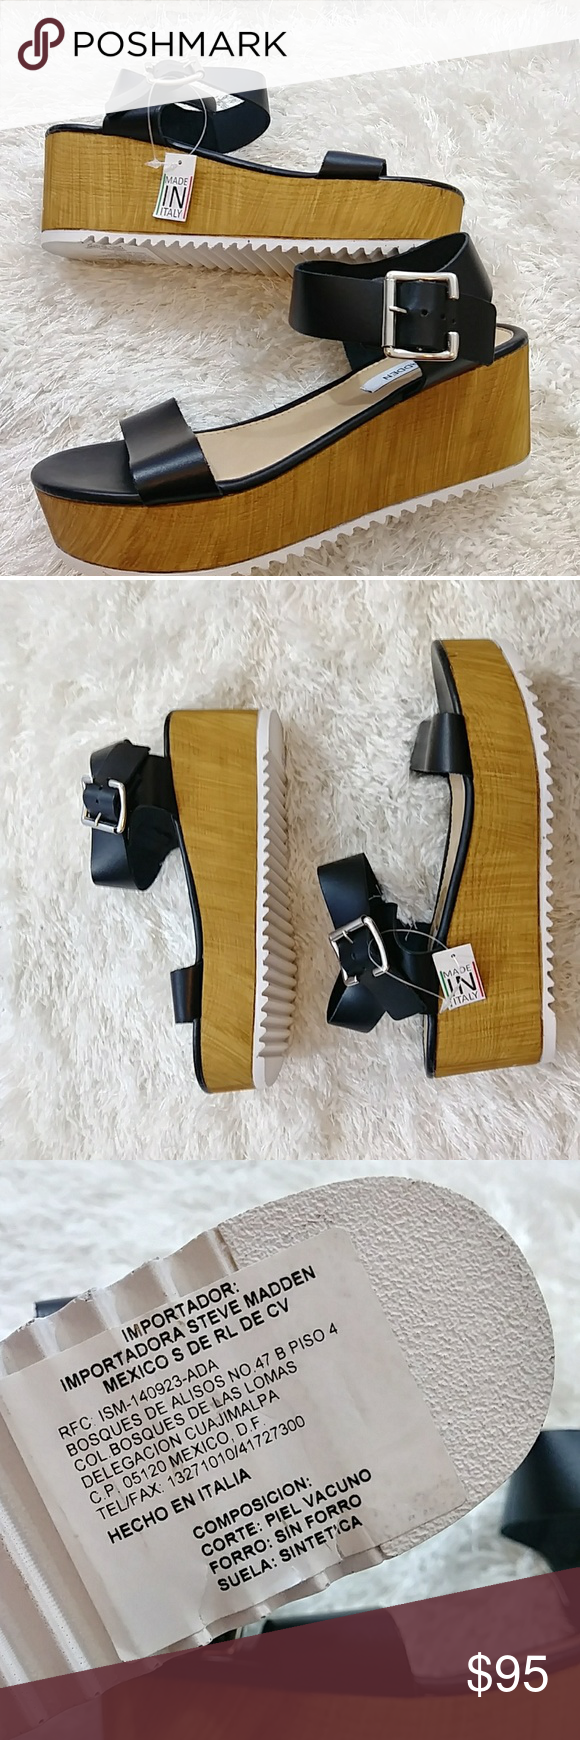 91f2084d2a7 Steve Madden Size 8 Nylee Wedge sandal Steve Madden Women Size 8 Black Wood Wedge  NYLEE Platform Sandal Italian Made. Brand new. No box. Tags attached.